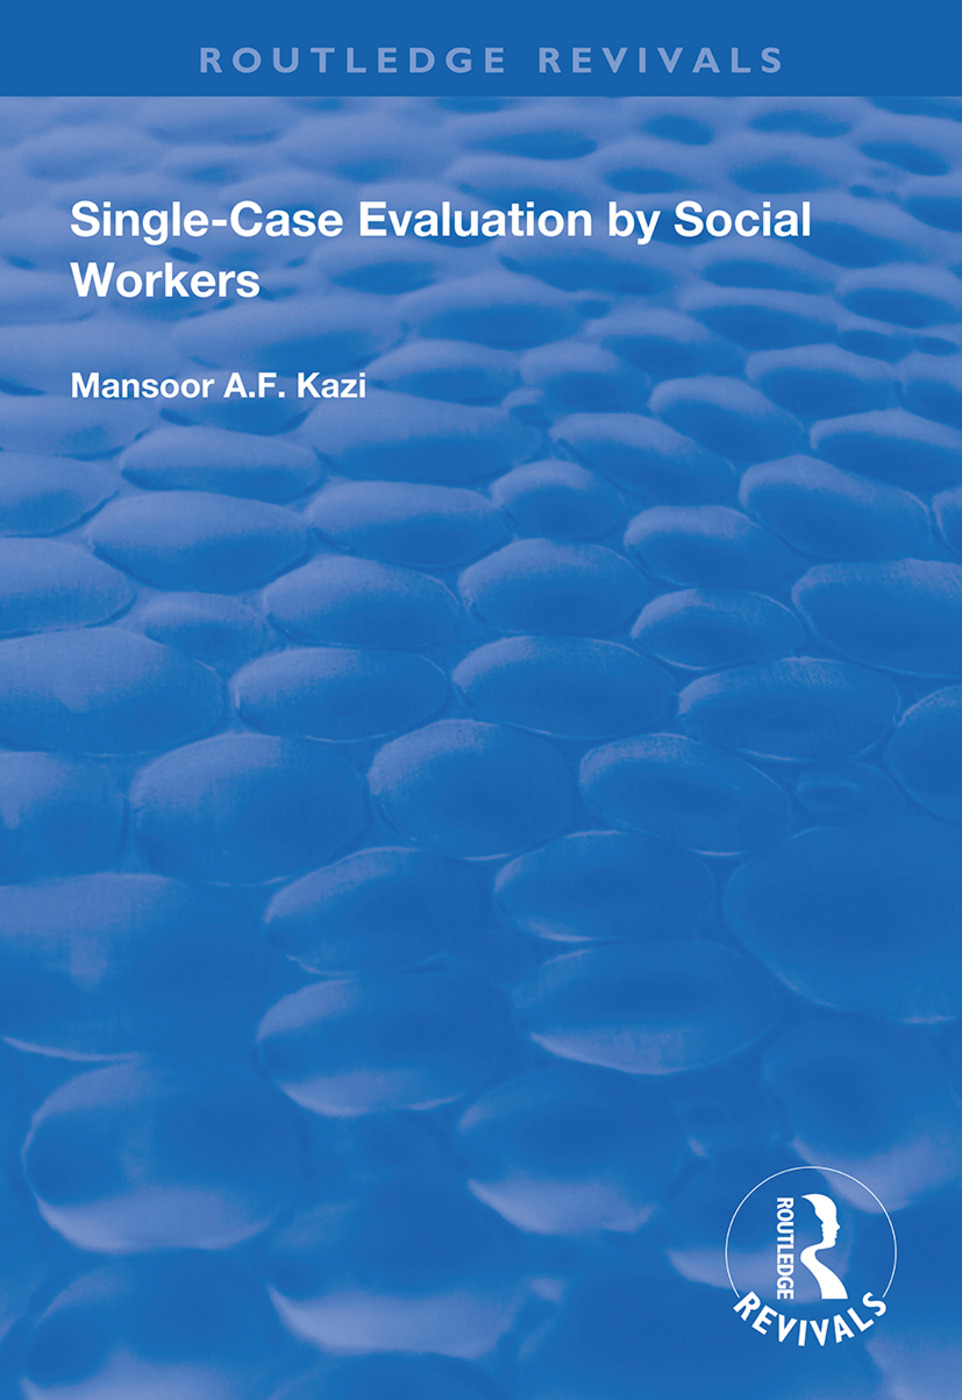 Single-Case Evaluation by Social Workers